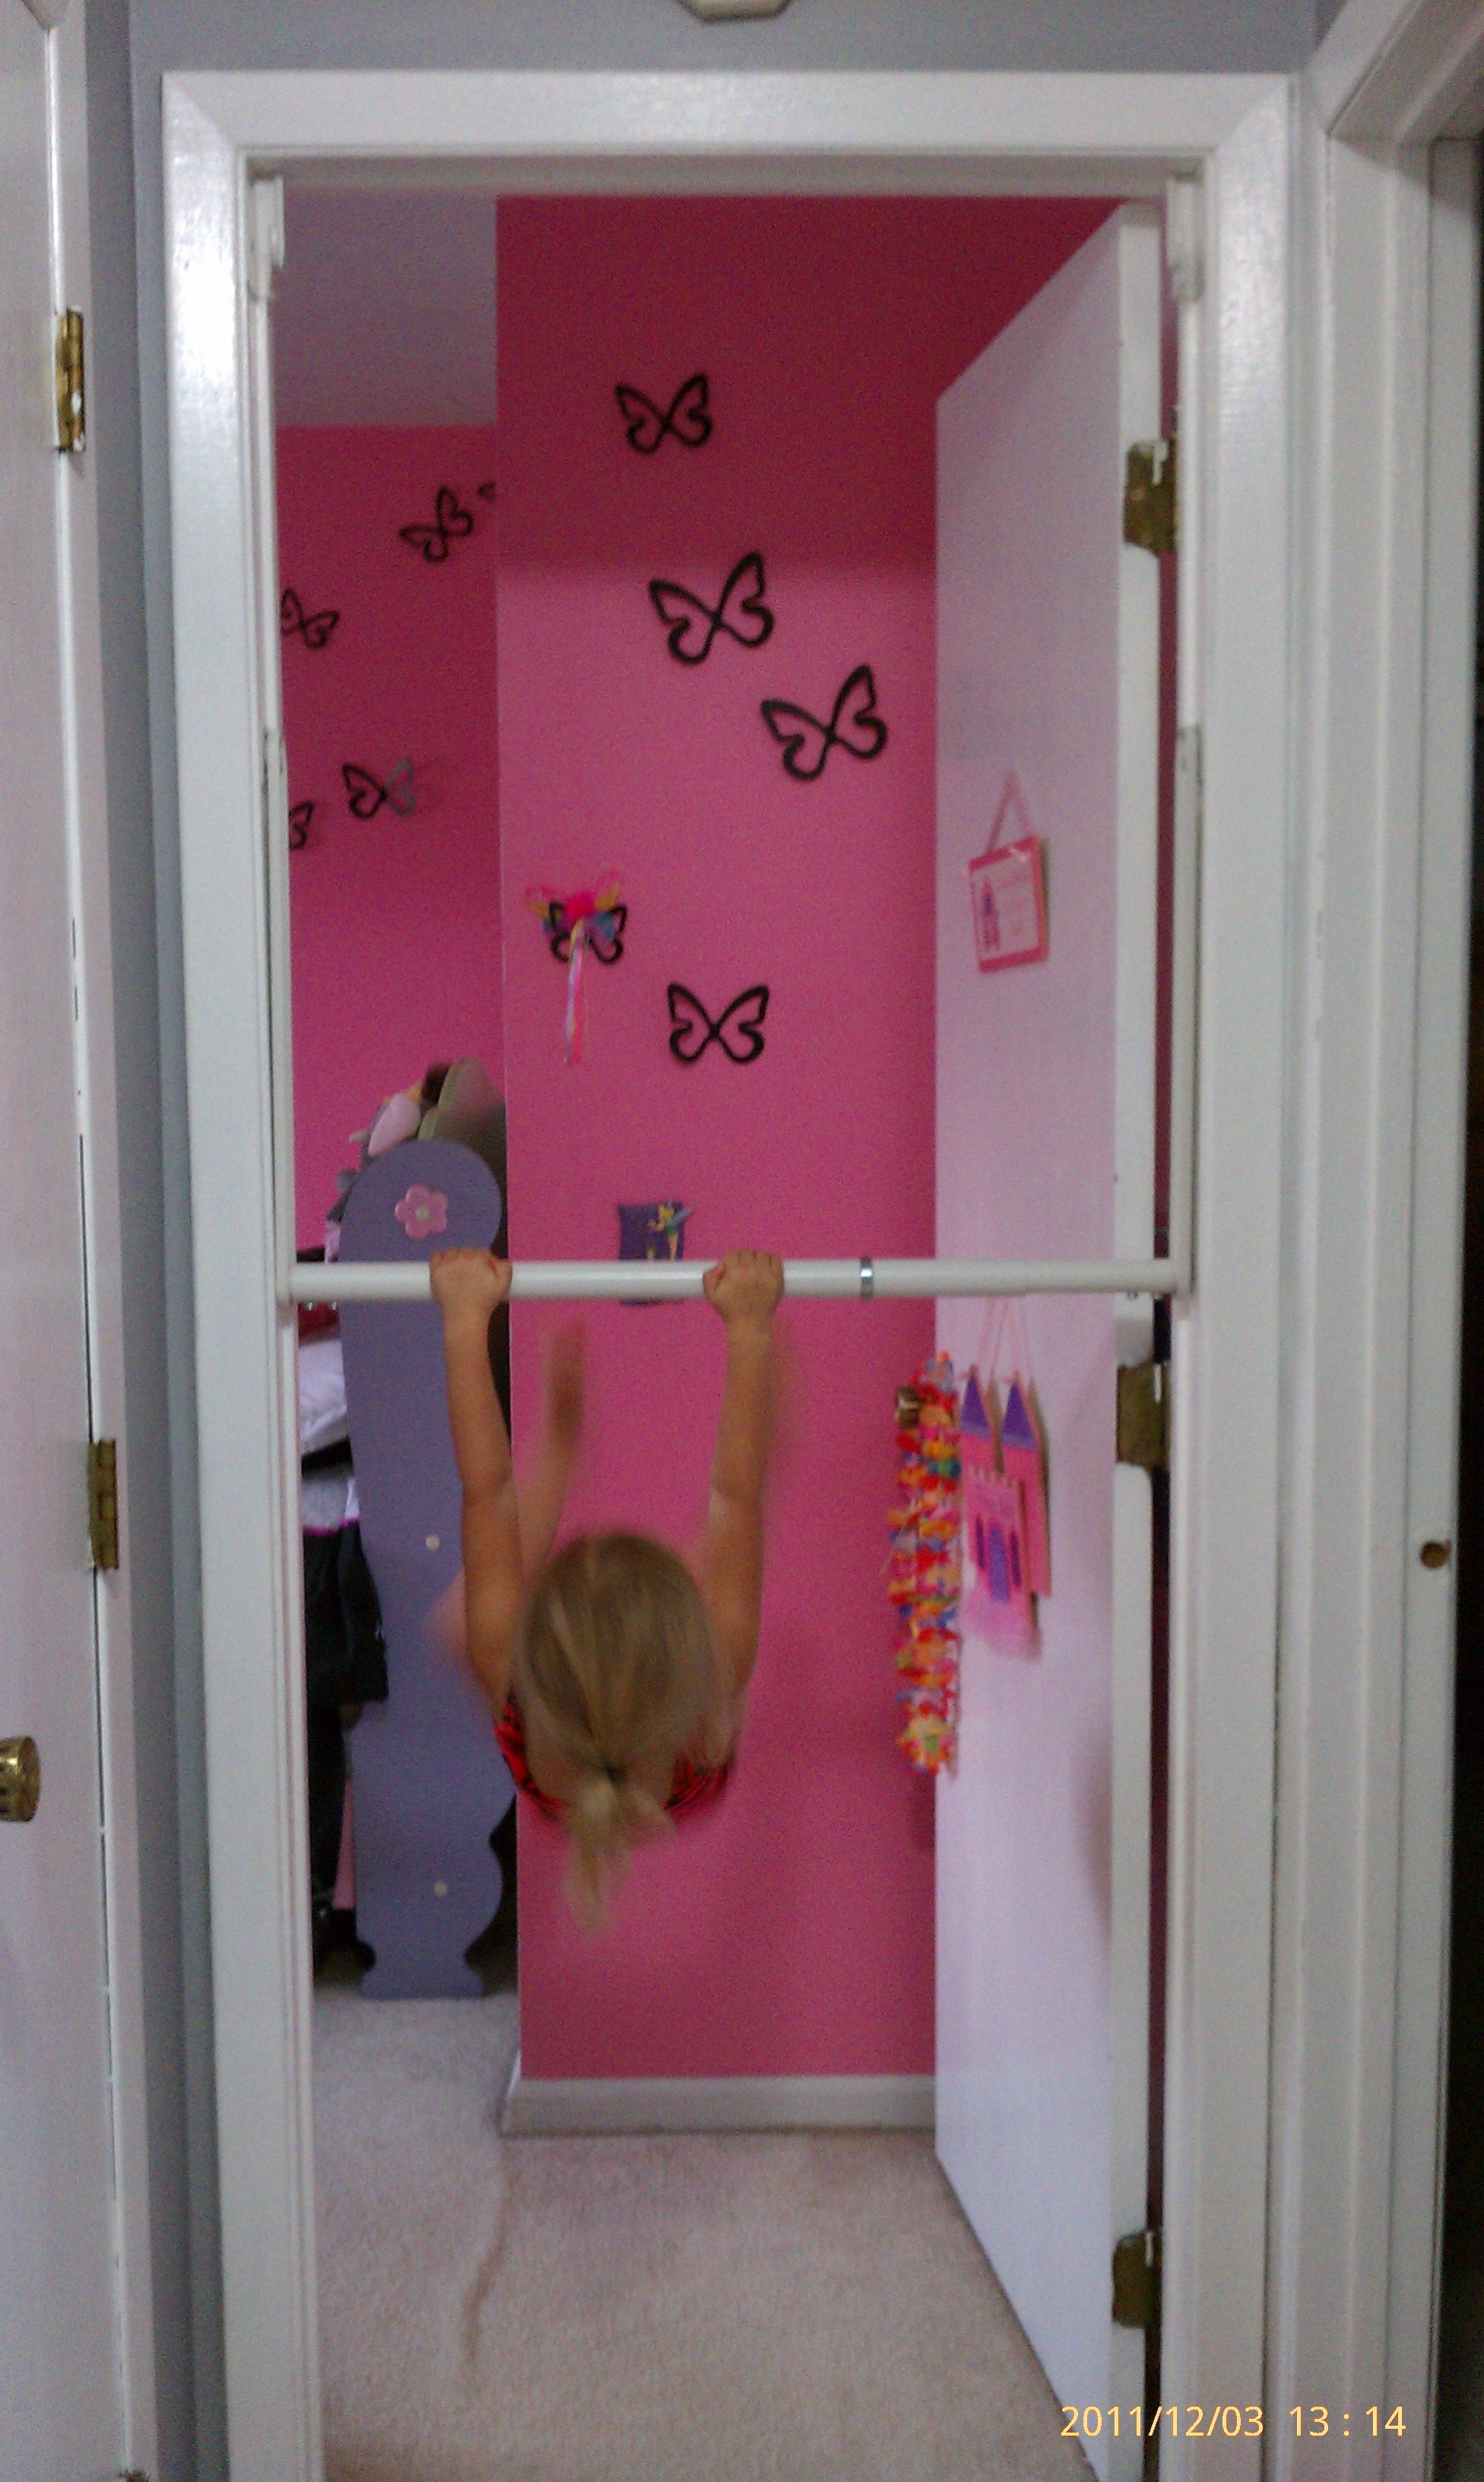 51 Ways To Diy The Bedroom Of Your Kids Dreams: Easy Way To Let Your Little Gymnast Practice The Bar At